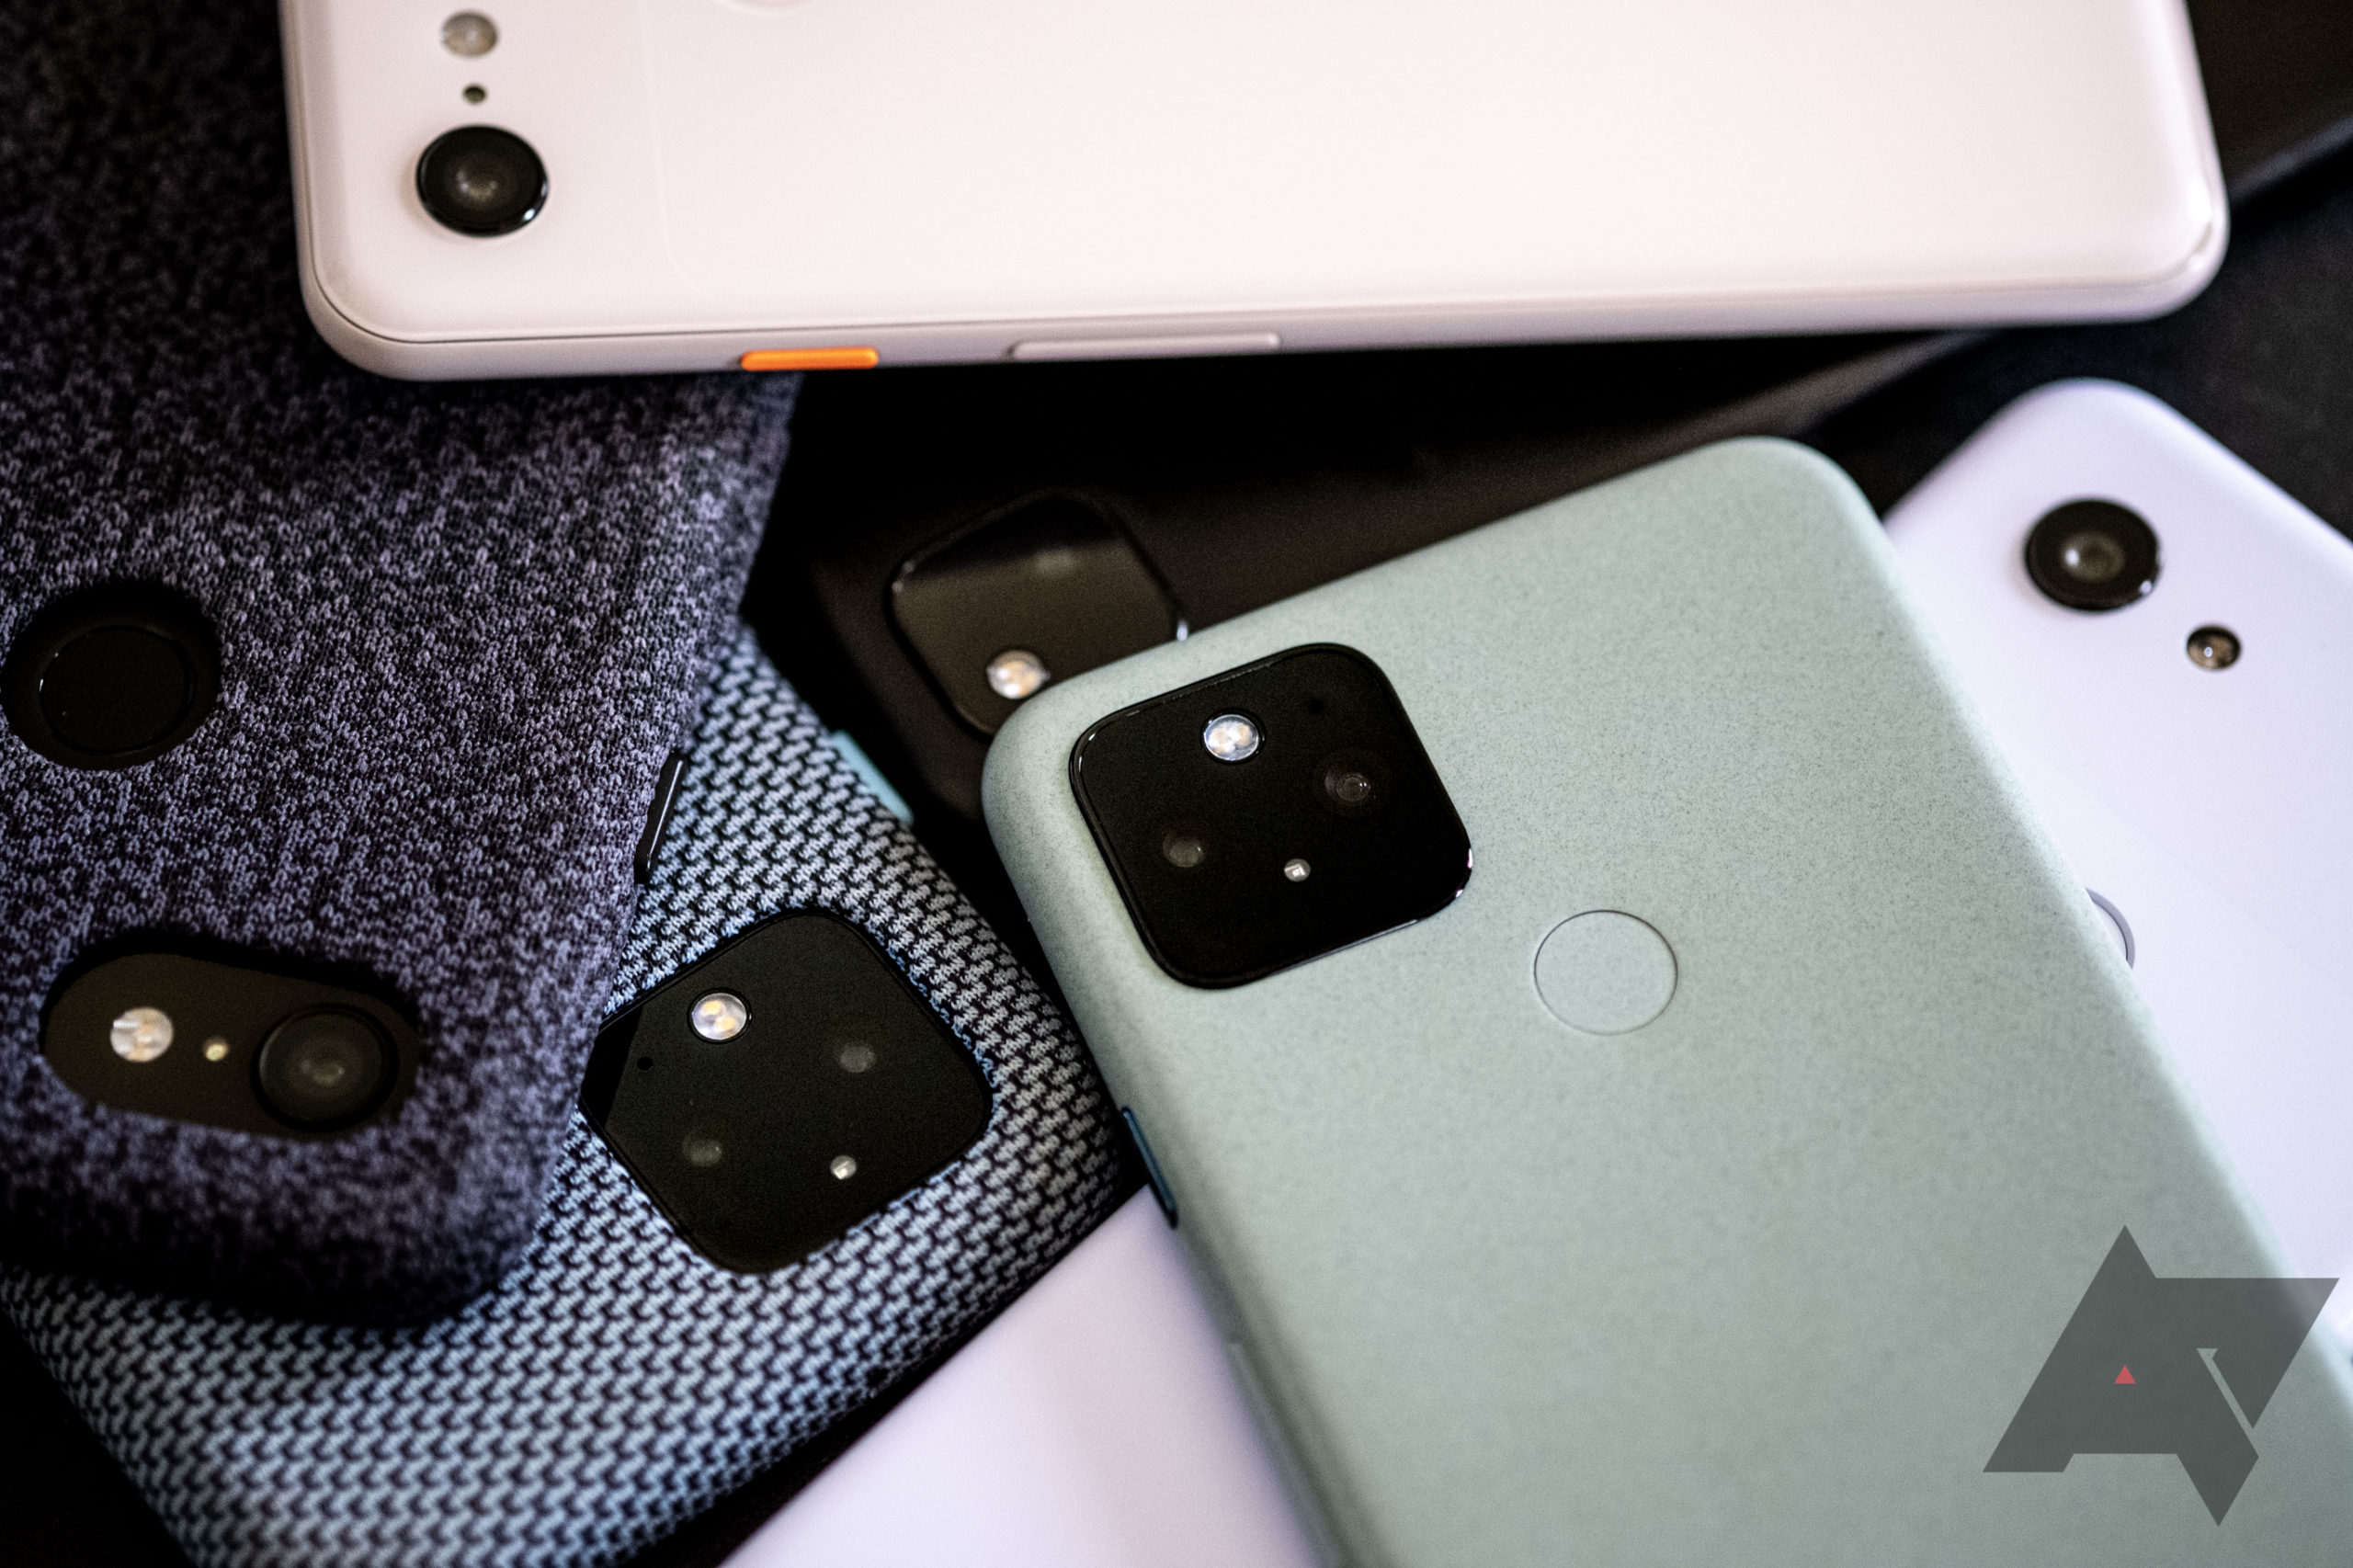 Google is working on a fix for poor Netflix quality on Pixel phones caused by Widevine bug - Android Police